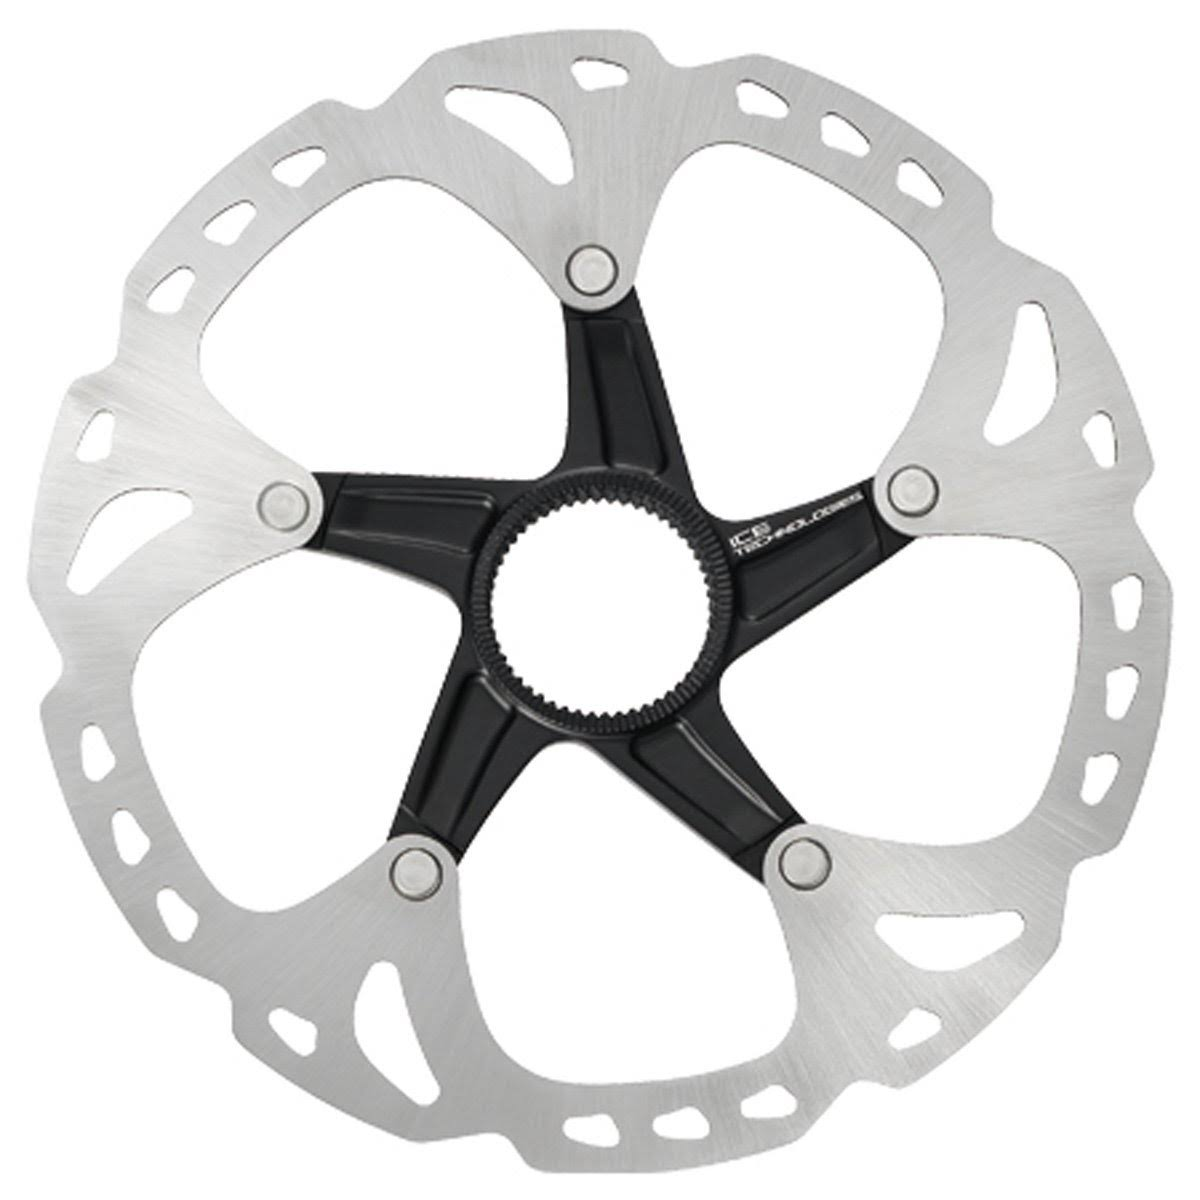 Shimano XT M780 Bicycle Disc Brake Rotor